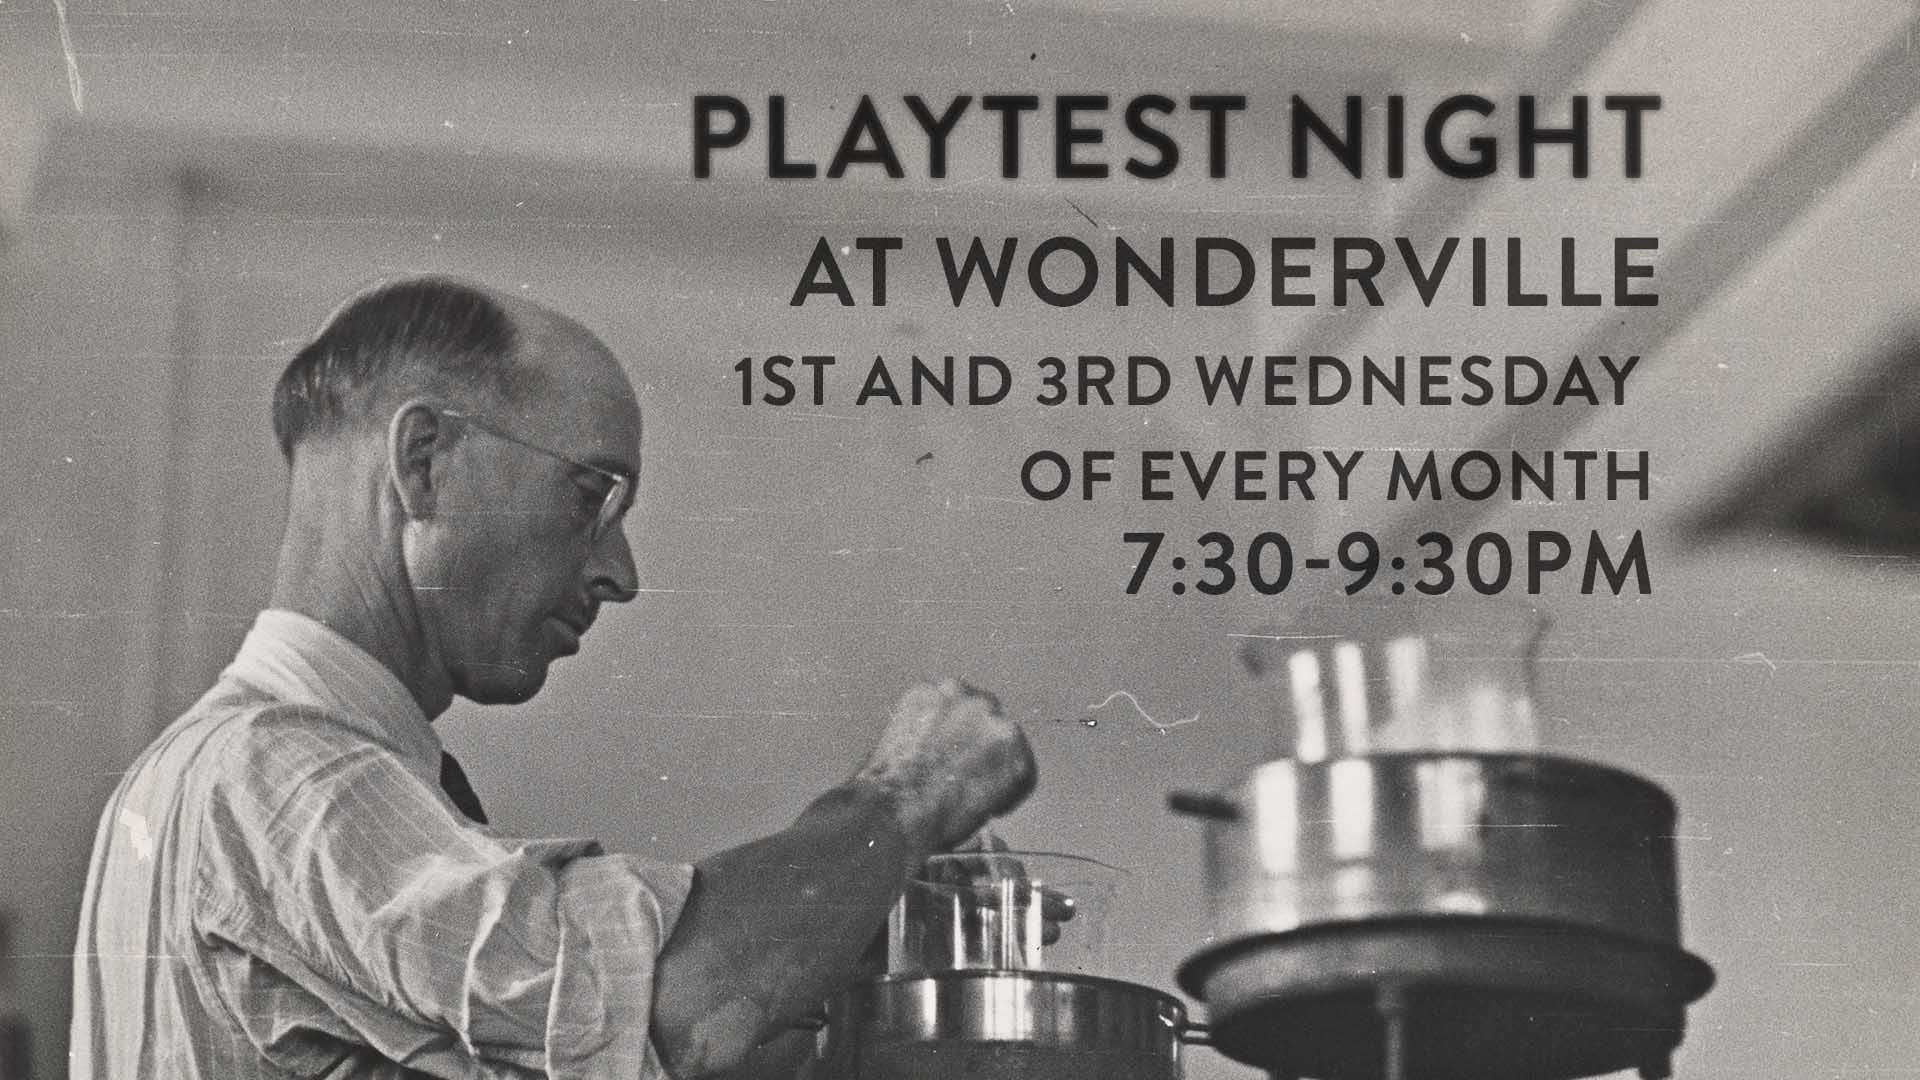 Playtest night is held on the 1st and 3rd Wednesday of every month at 7:30 at Wonderville  RSVP:  https://withfriends.co/Event/2258005/Playtest_Night